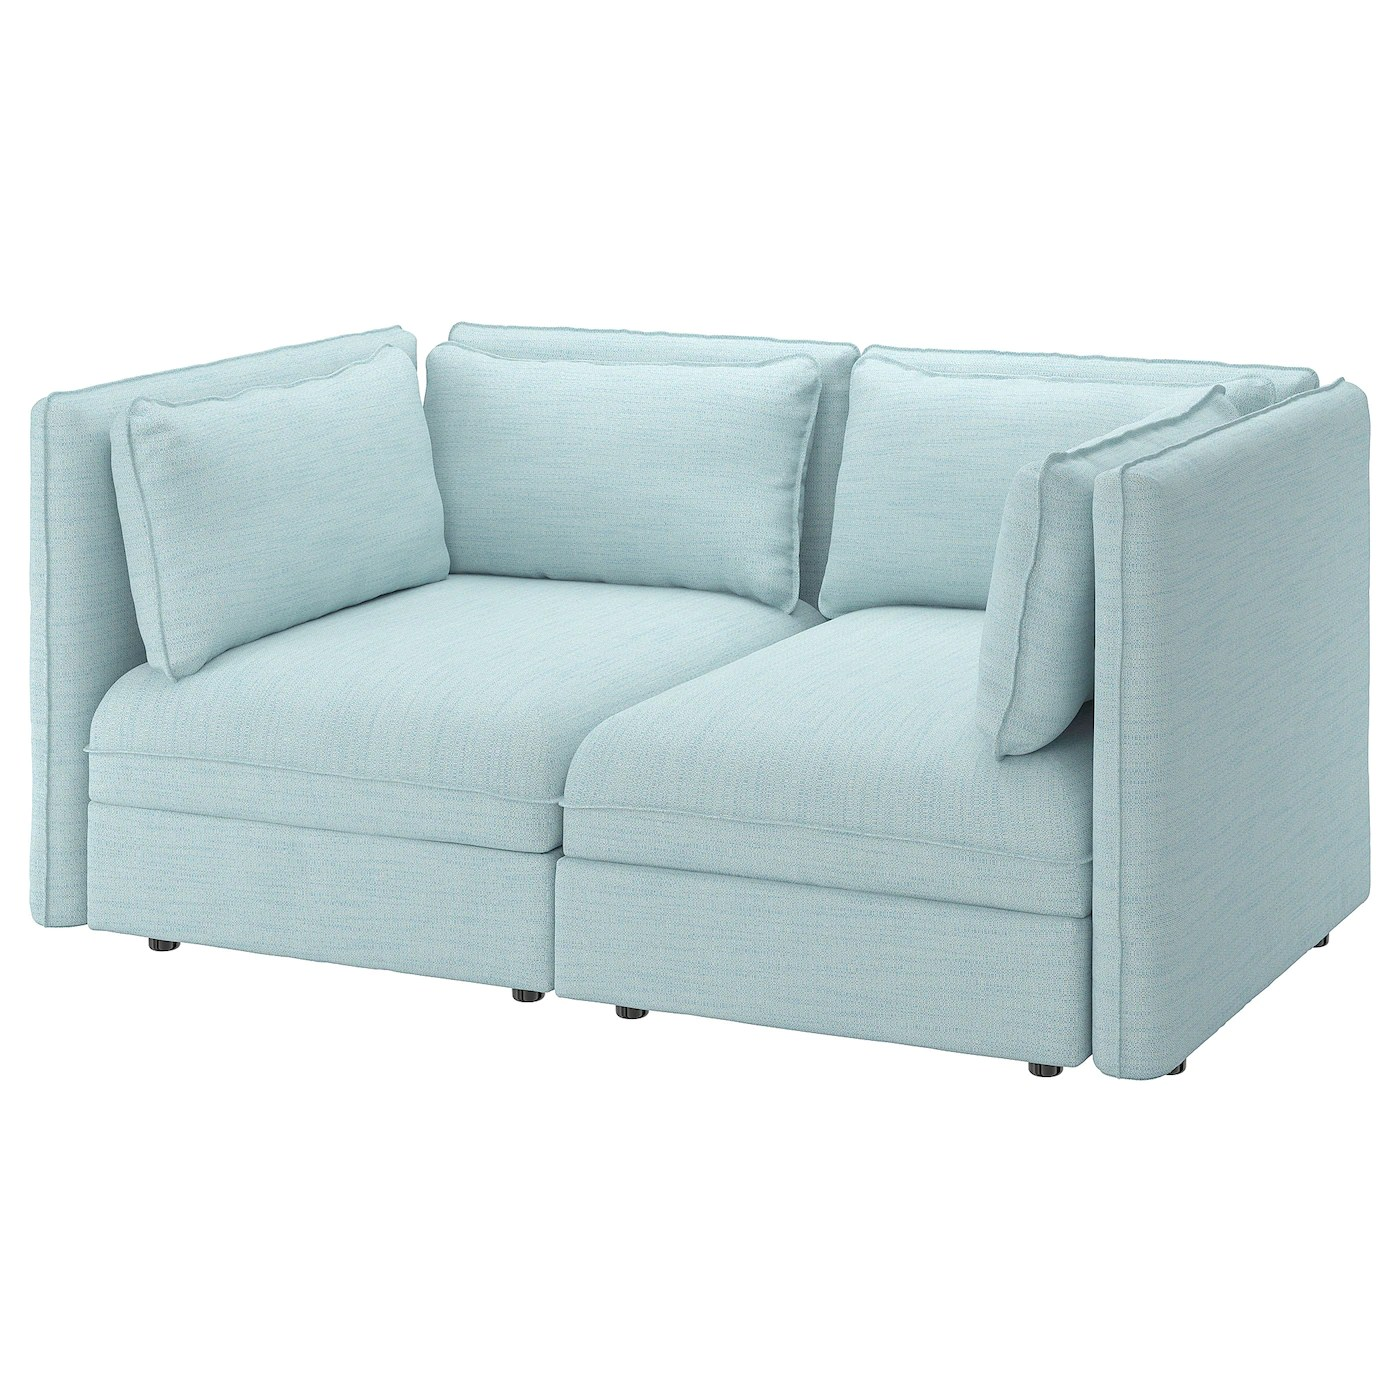 Sofa 2 Sitzer Ikea Vallentuna 2-seat Modular Sofa - Hillared Light Blue - Ikea